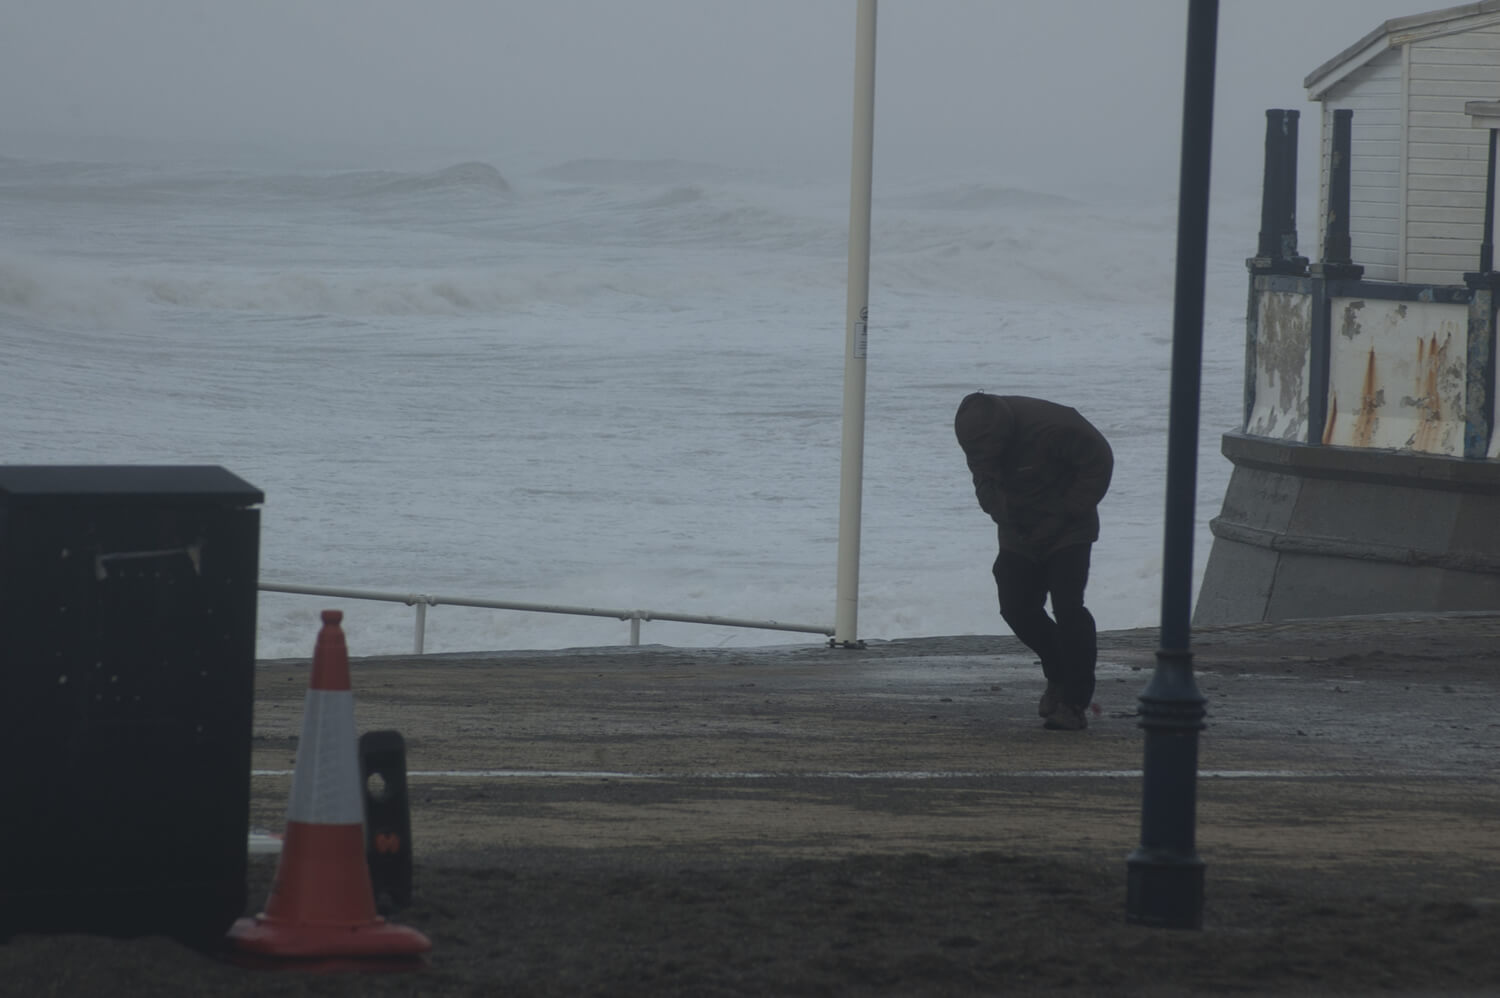 CE Aberystwyth storms man on the promenade battling the high winds